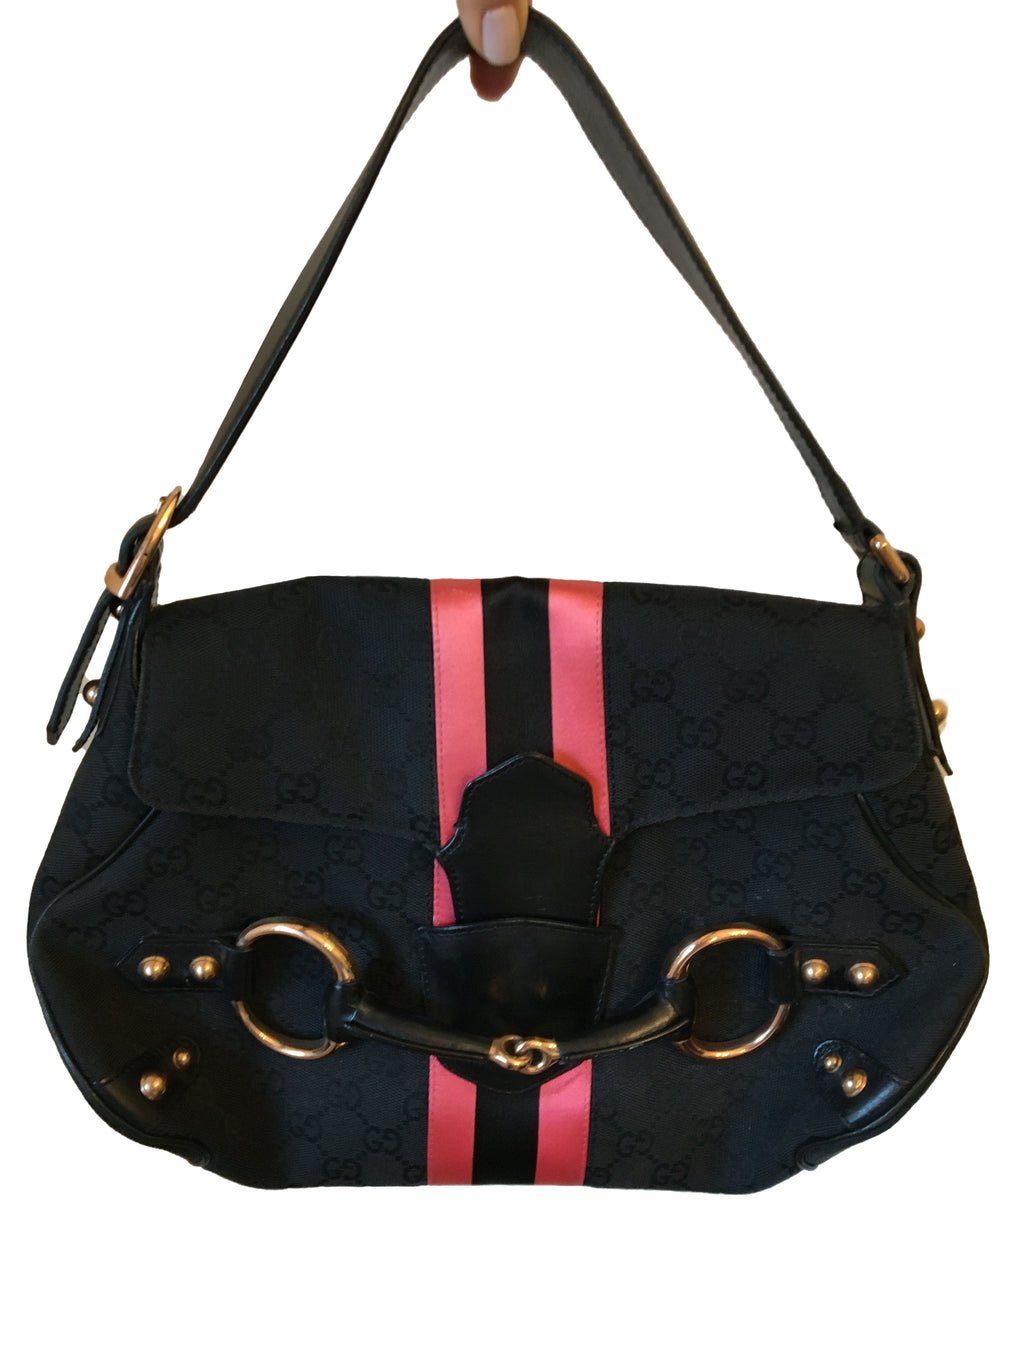 Gucci Black GG Fabric Bag with Pink Silk Stripes and Bronze Horsebit